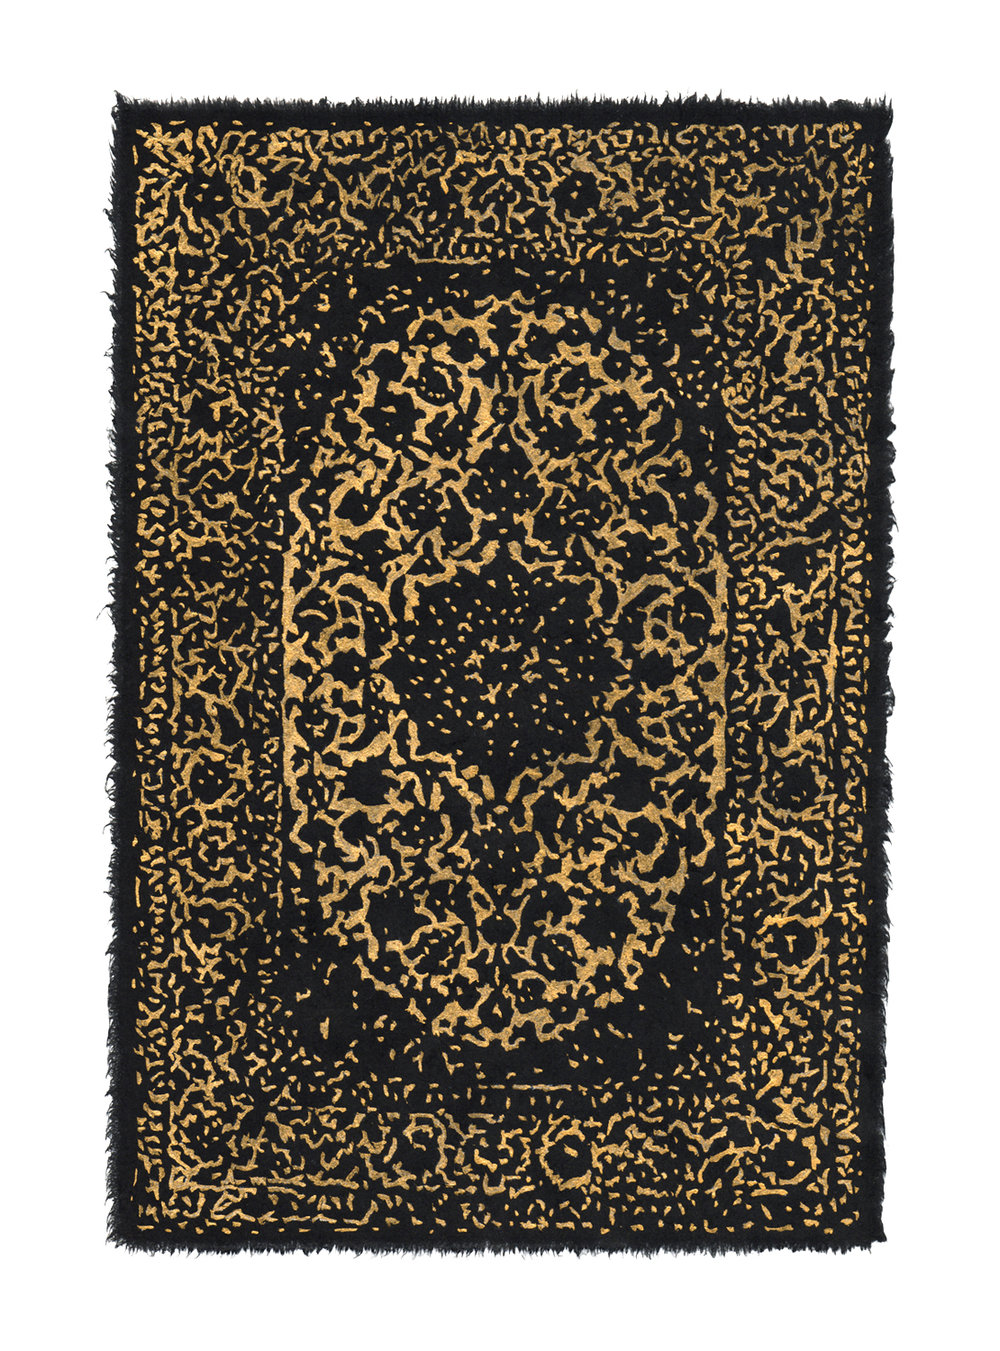 2_Gabriele_Black_Magic_Carpet_Artsy.jpg